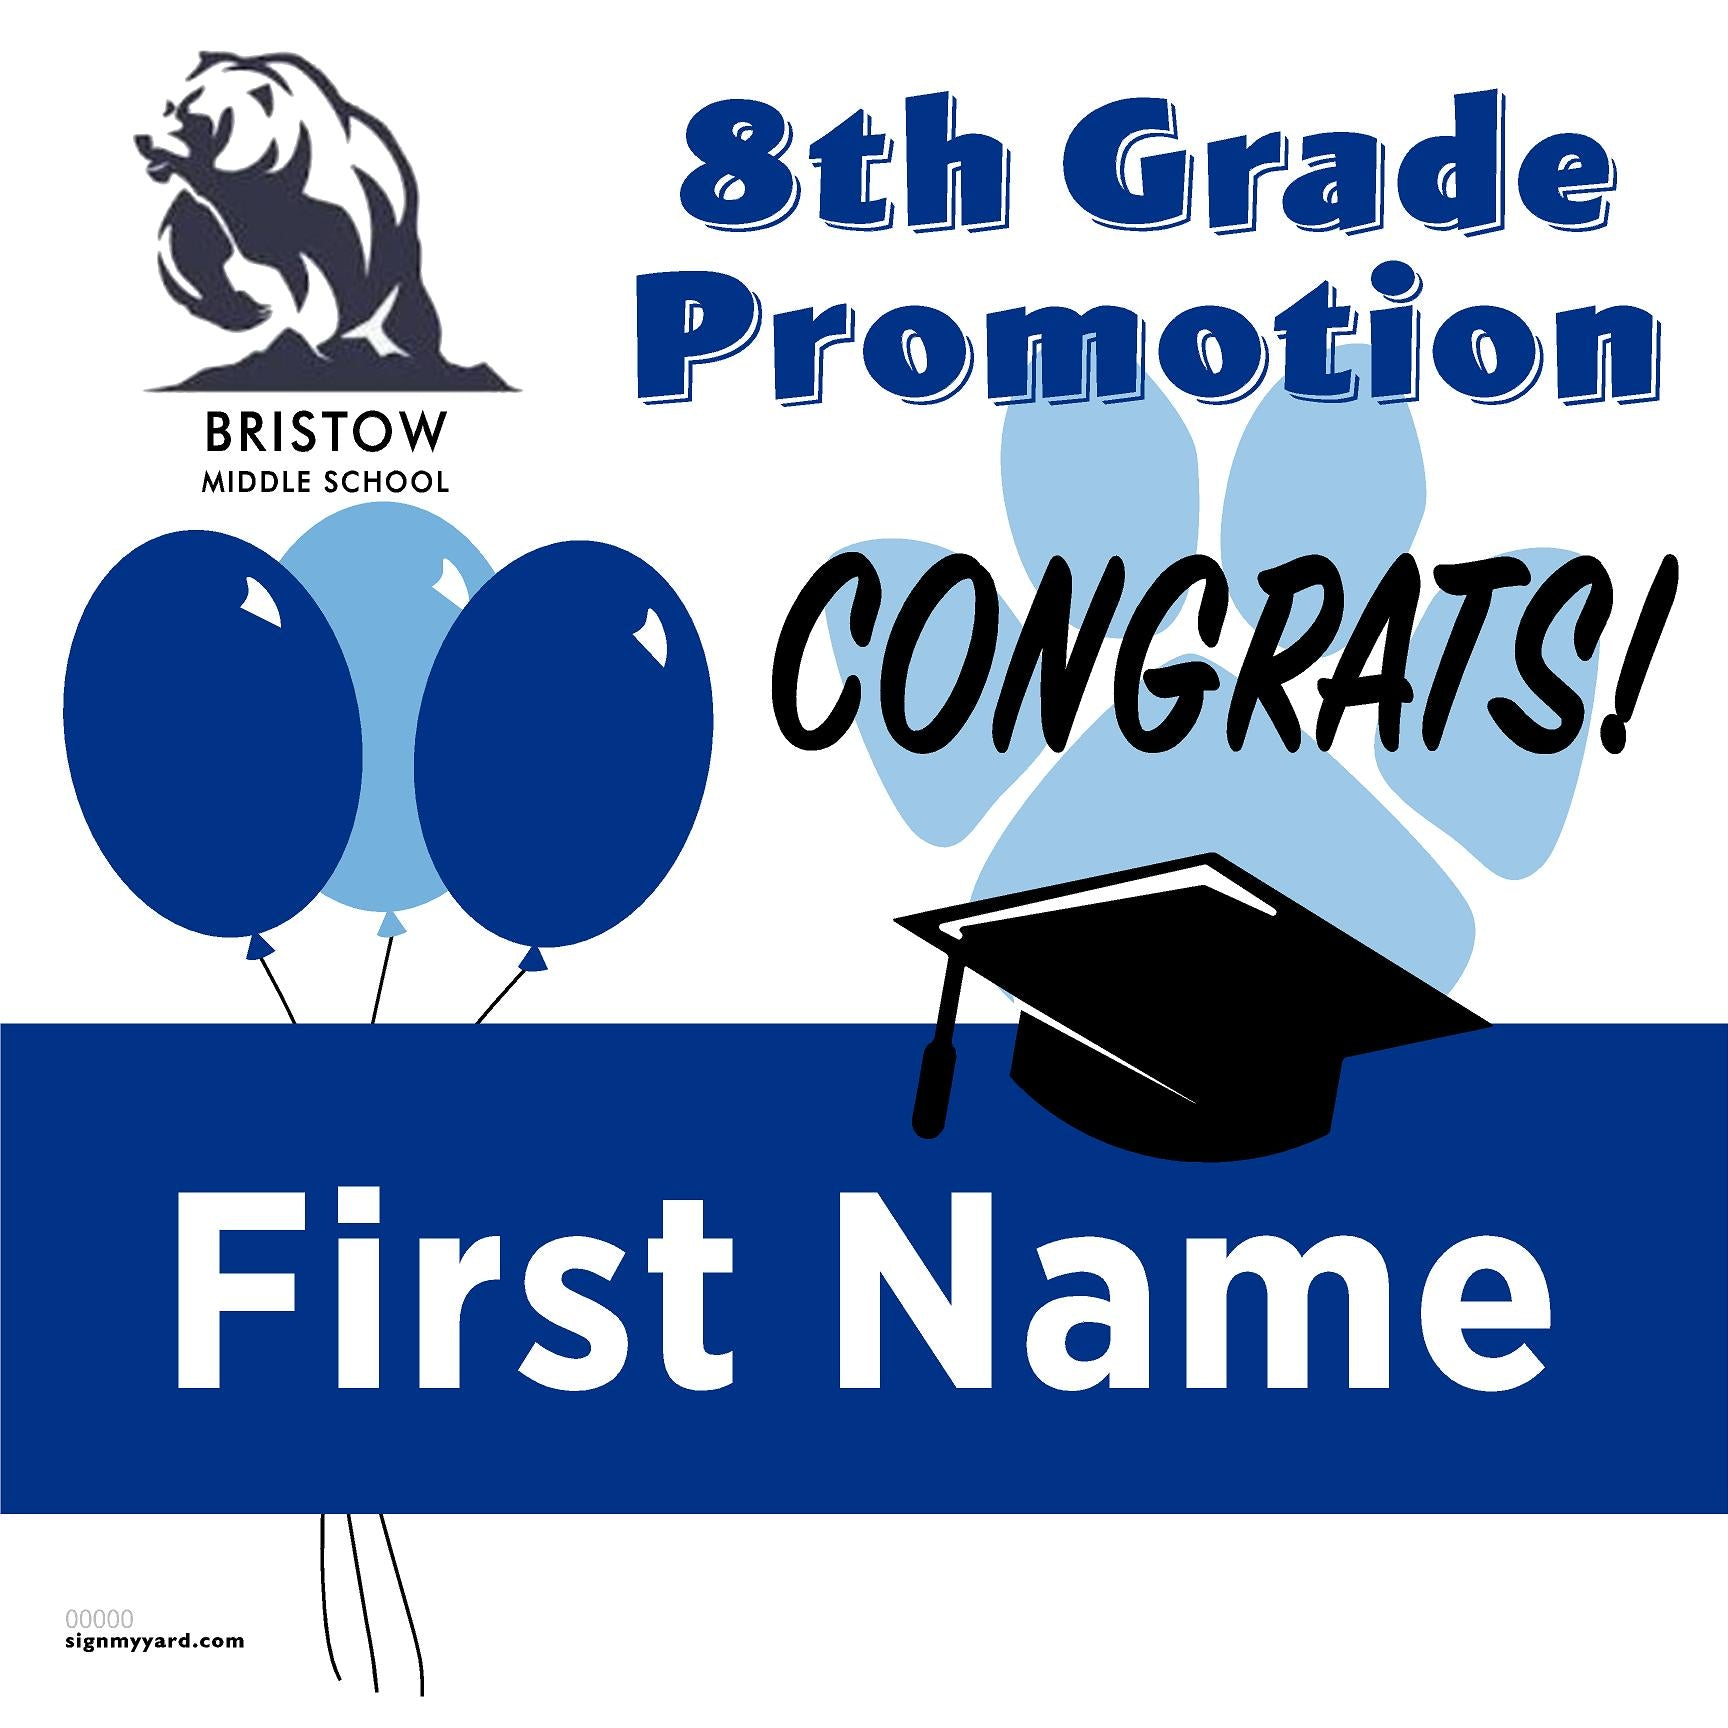 Bristow Middle School 8th Grade Promotion 24x24 #shineon2024 Yard Sign (Option A)